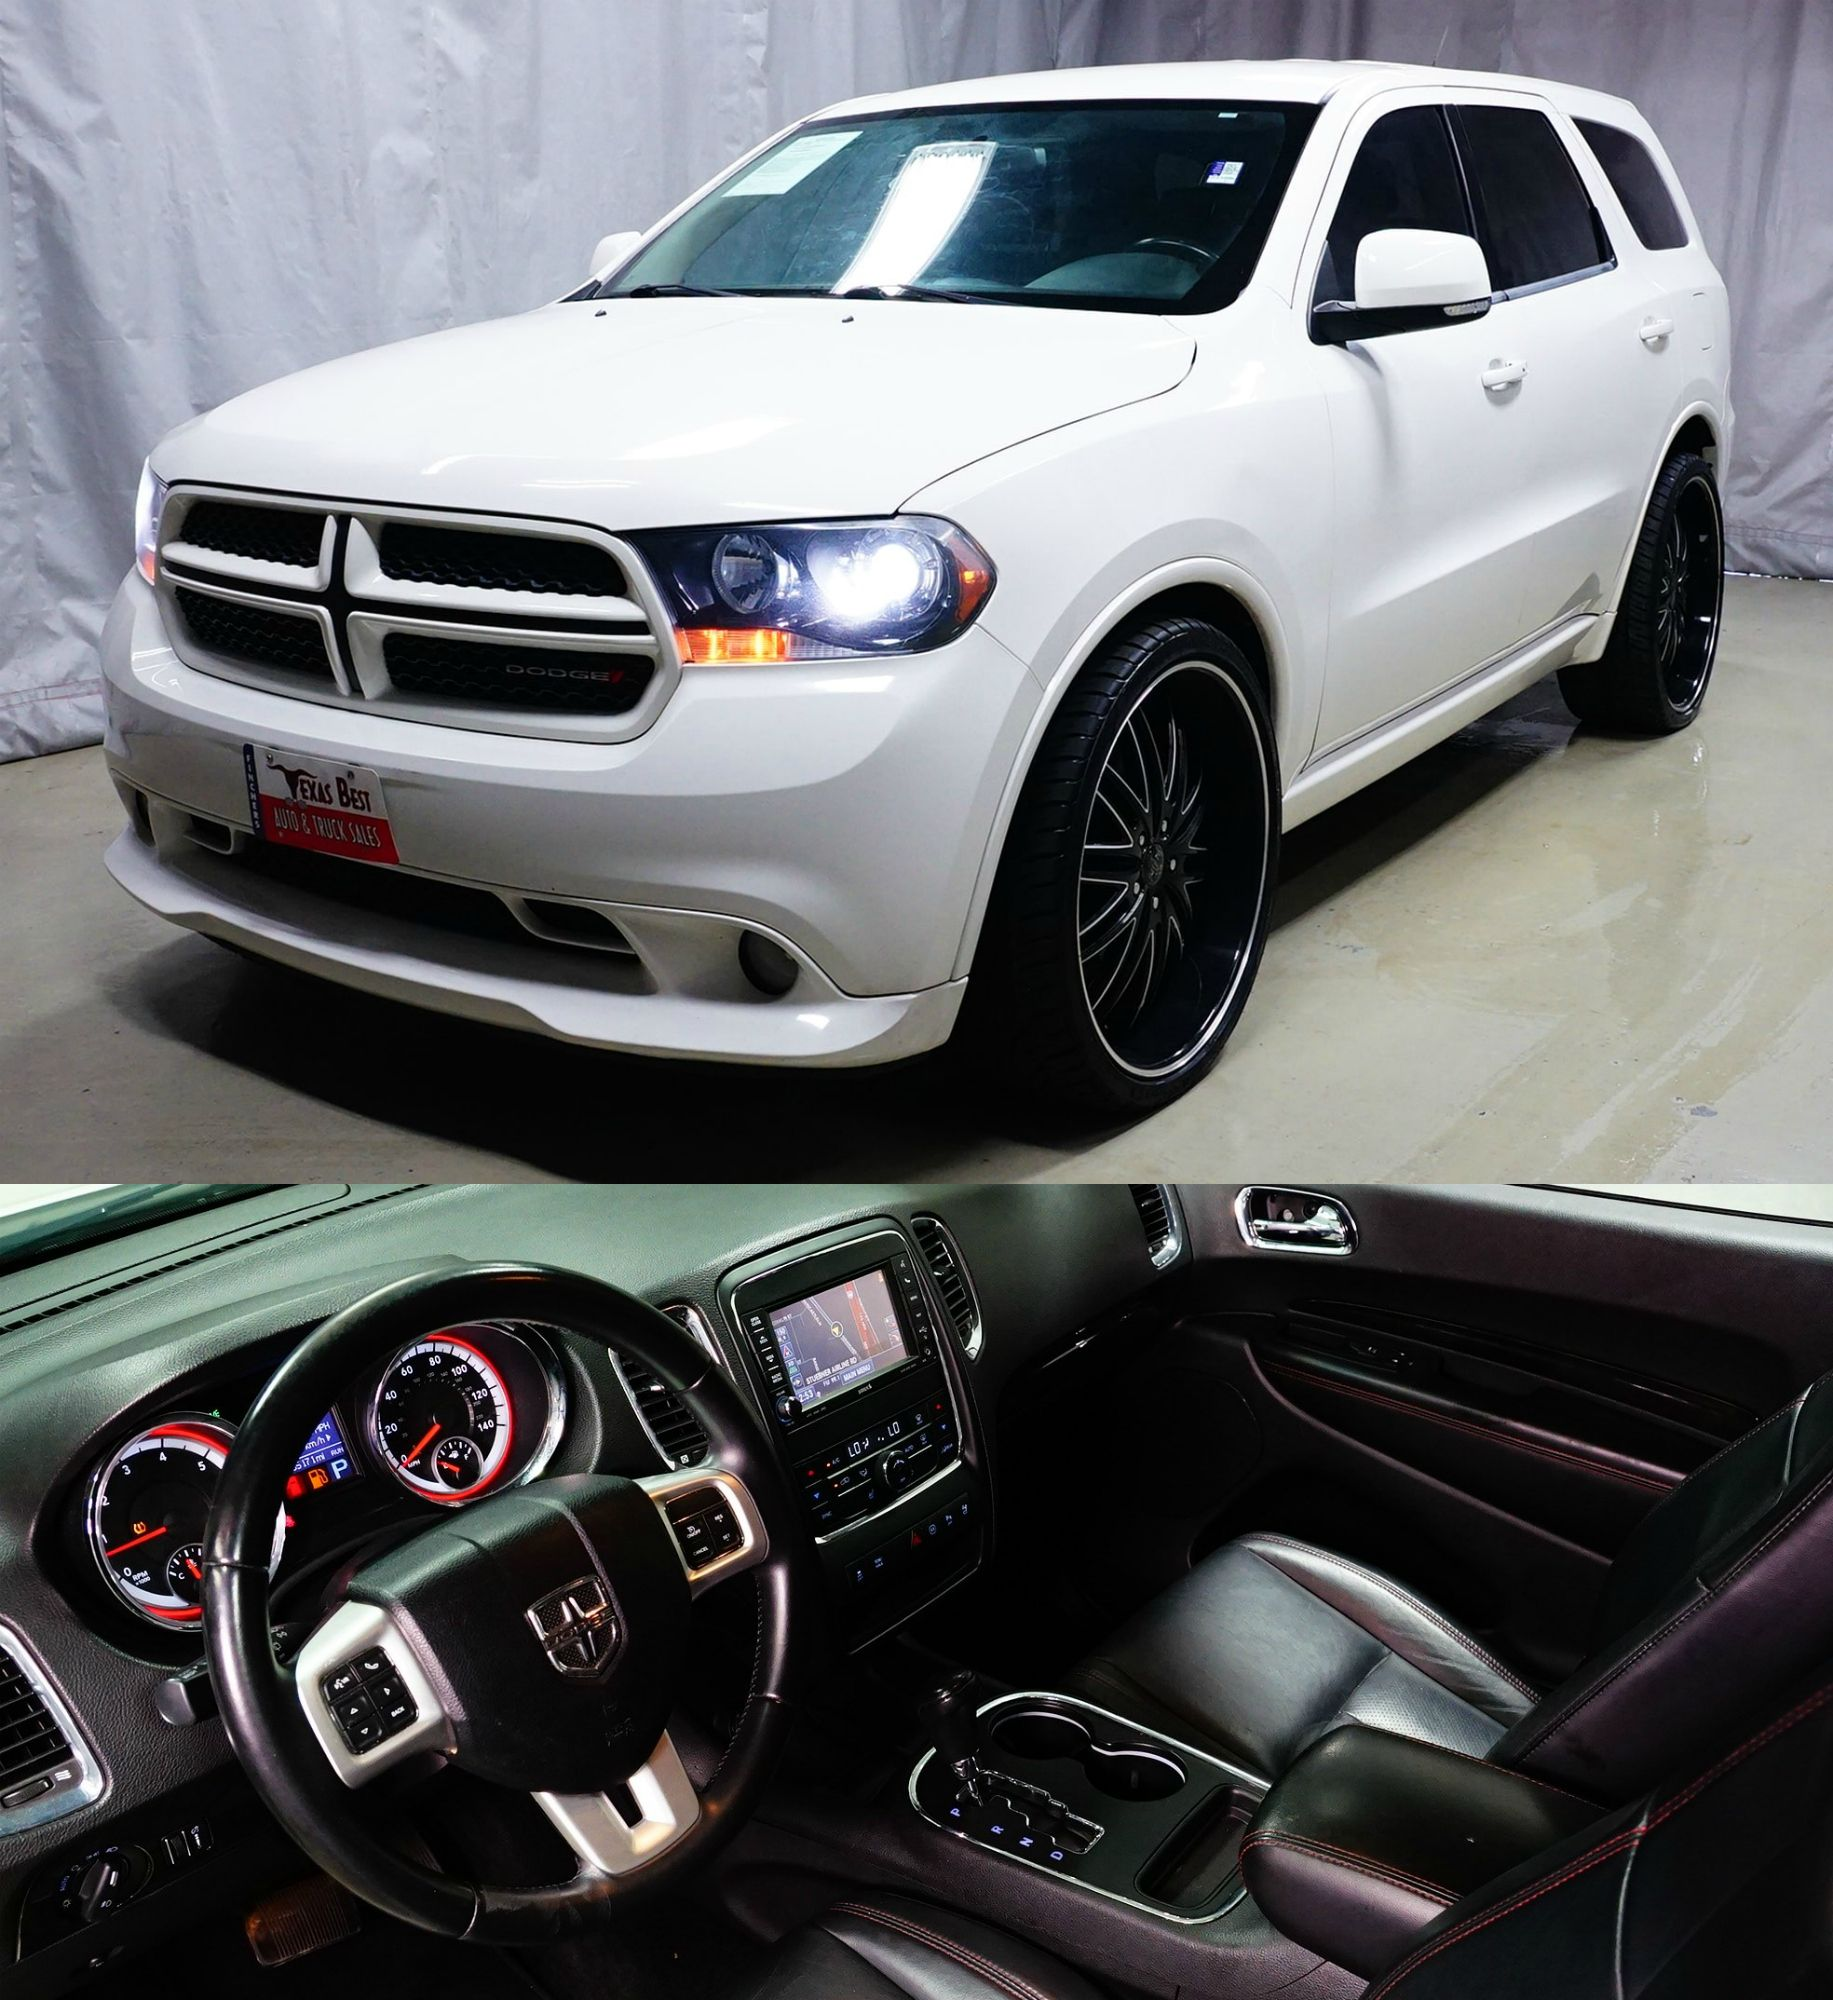 Looking For An Affordable SUV? Check Out This 2012 Dodge